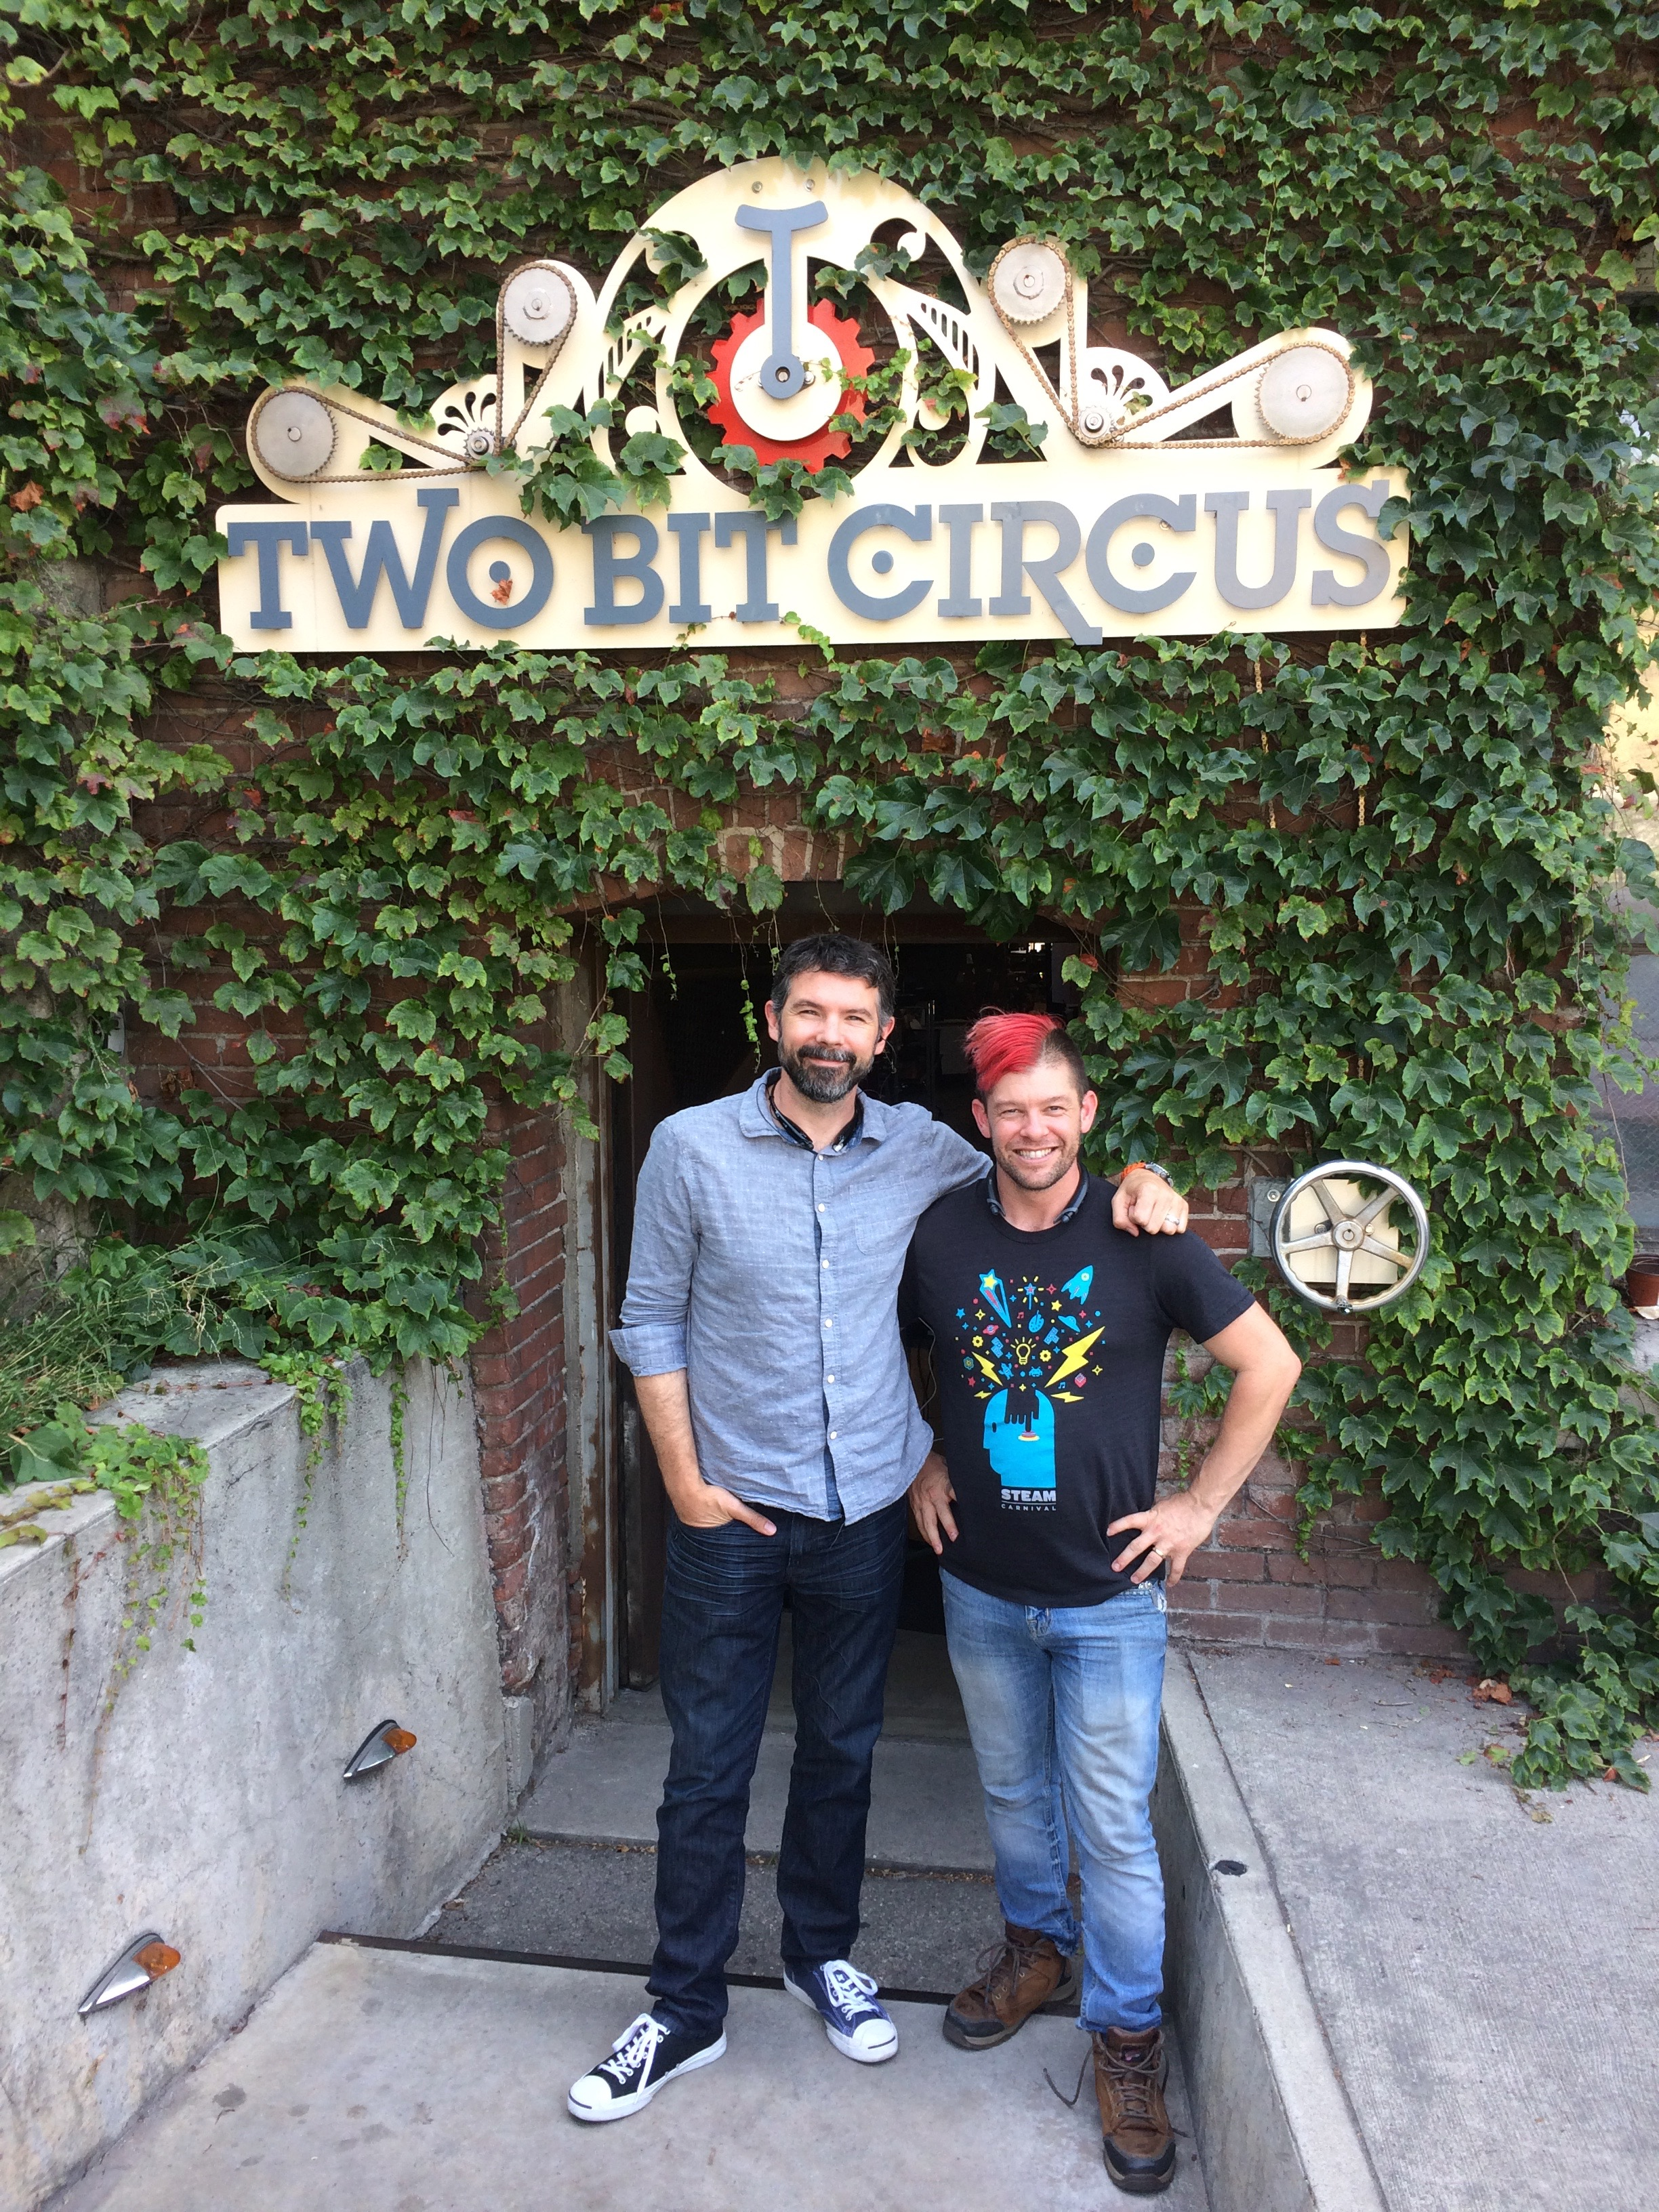 Two Bit Circus founders Brent Bushnell and Eric Gradman outside of the companies headquarters in Brewery Arts Complex in Los Angeles.